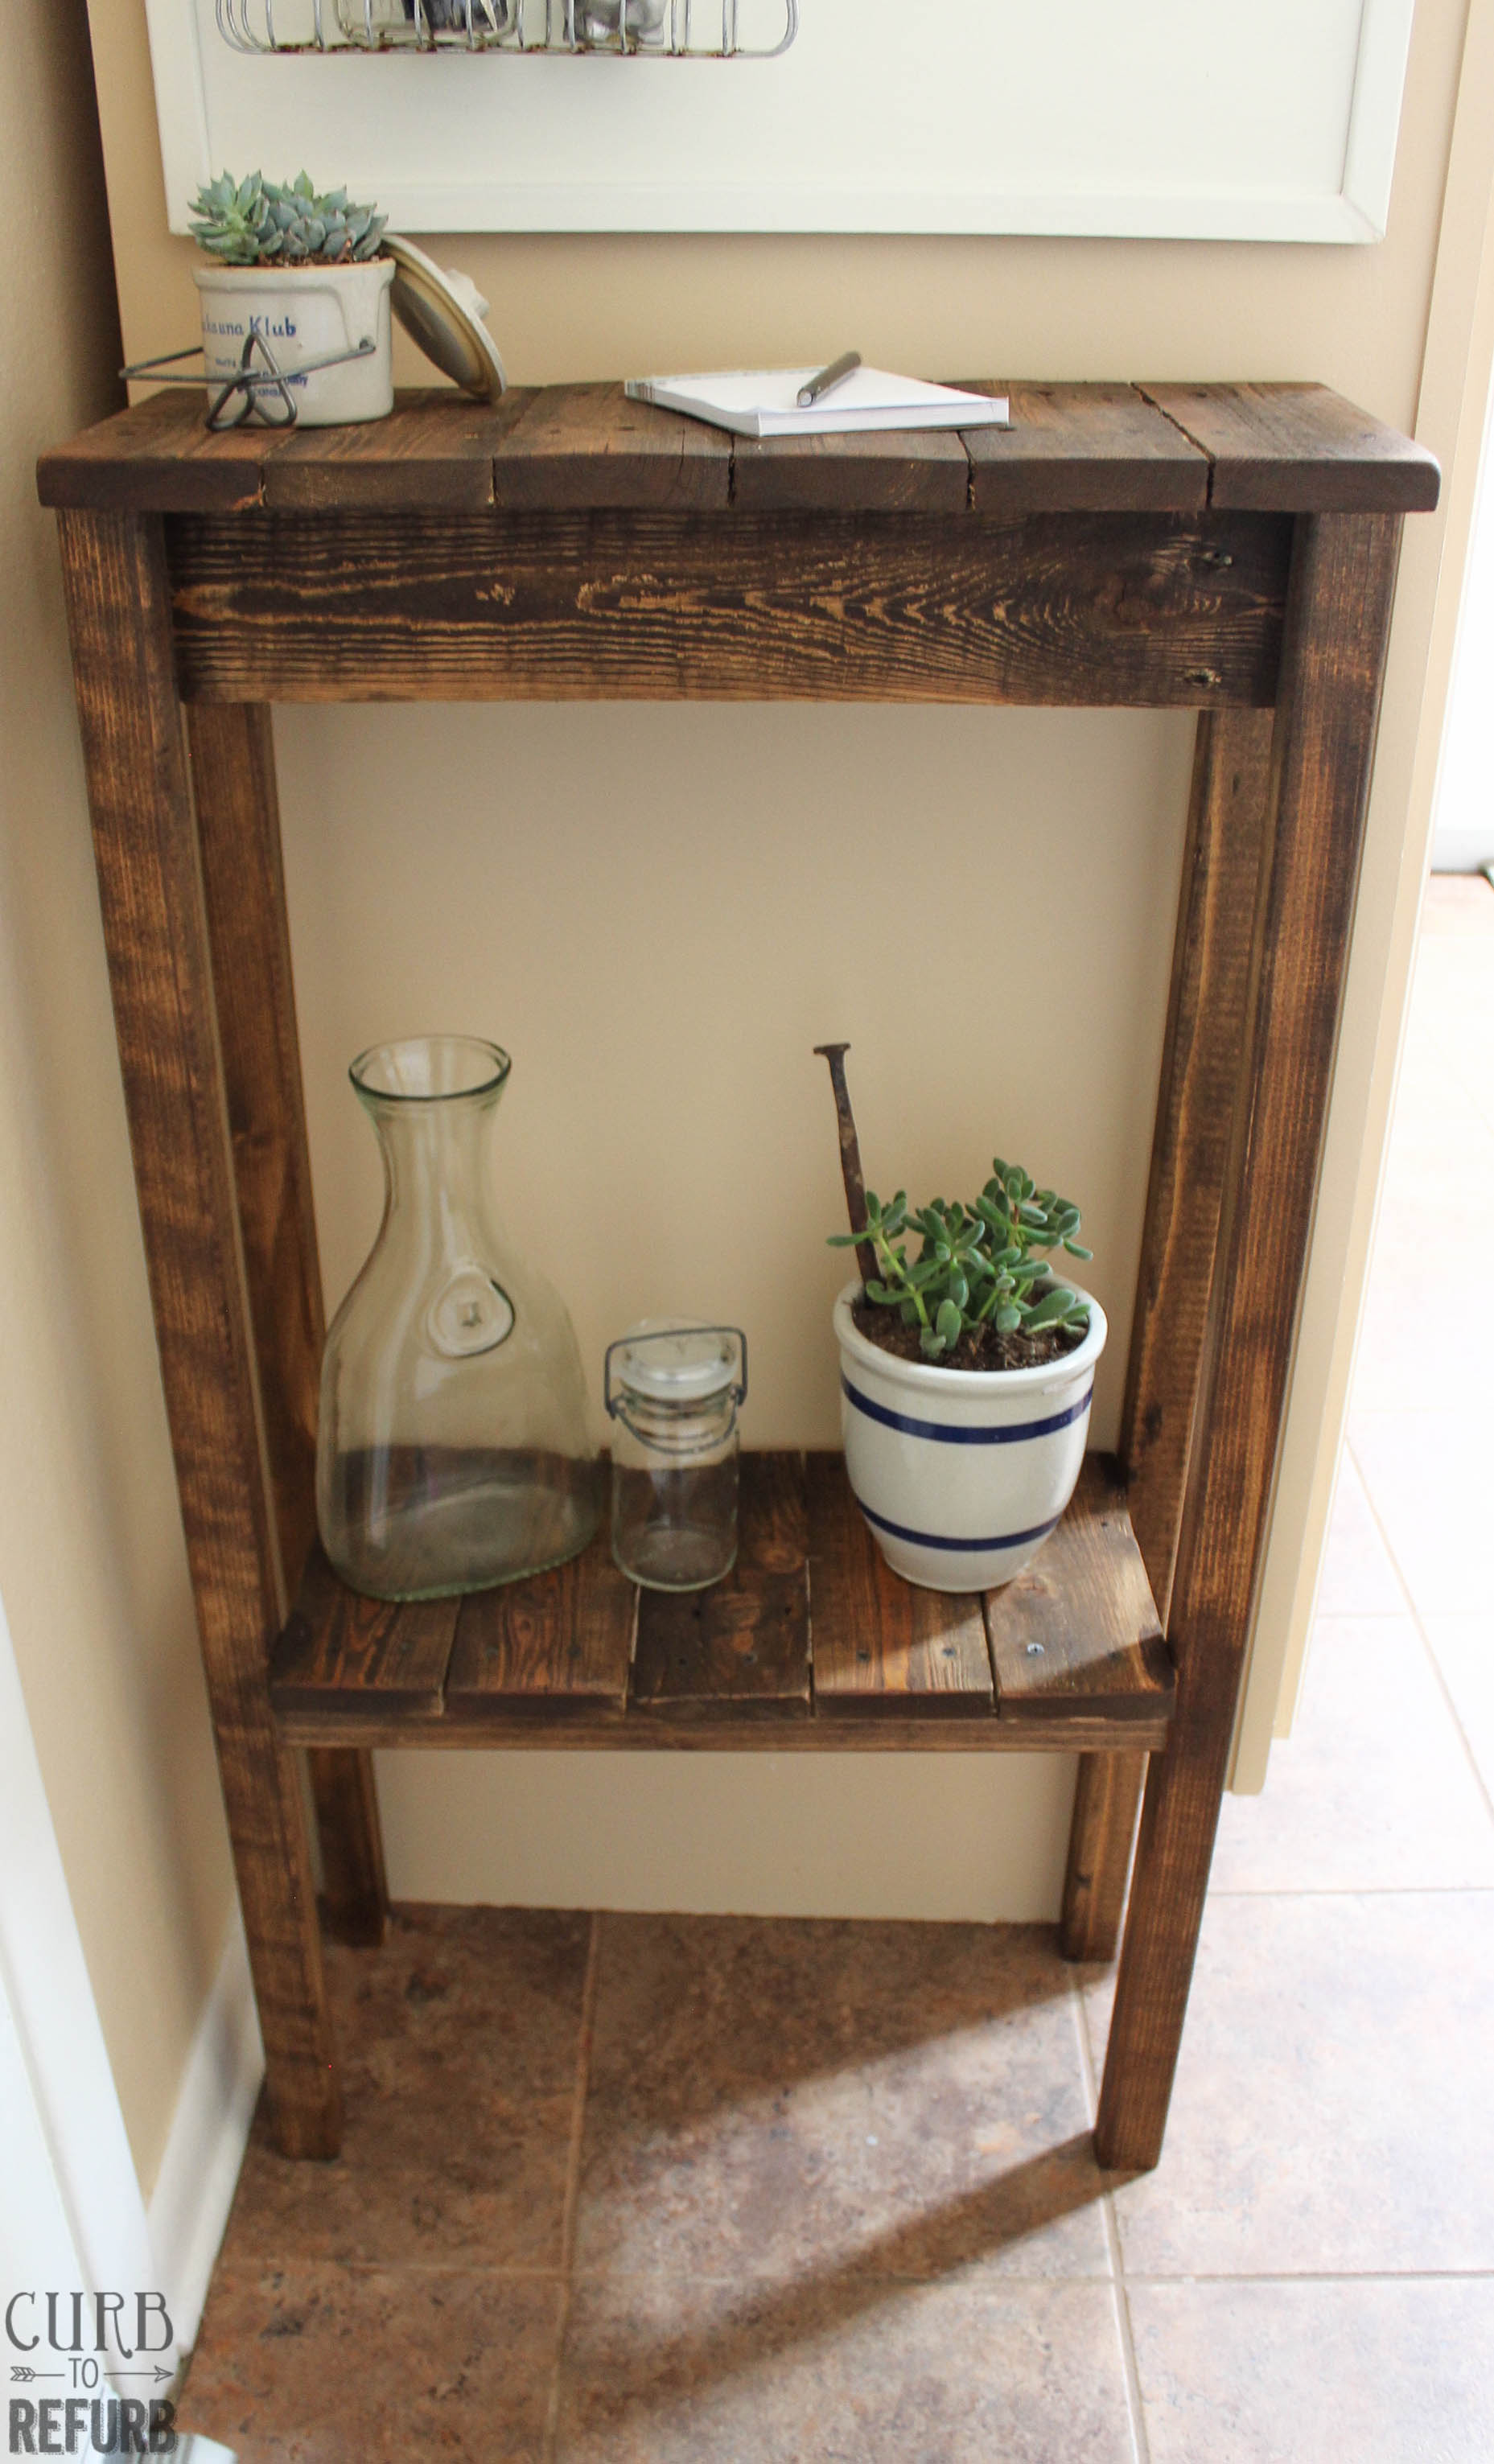 Diy crate console table - How To Turn A Pallet Into A Console Table By Curb To Refurb Featured On Remodelaholic